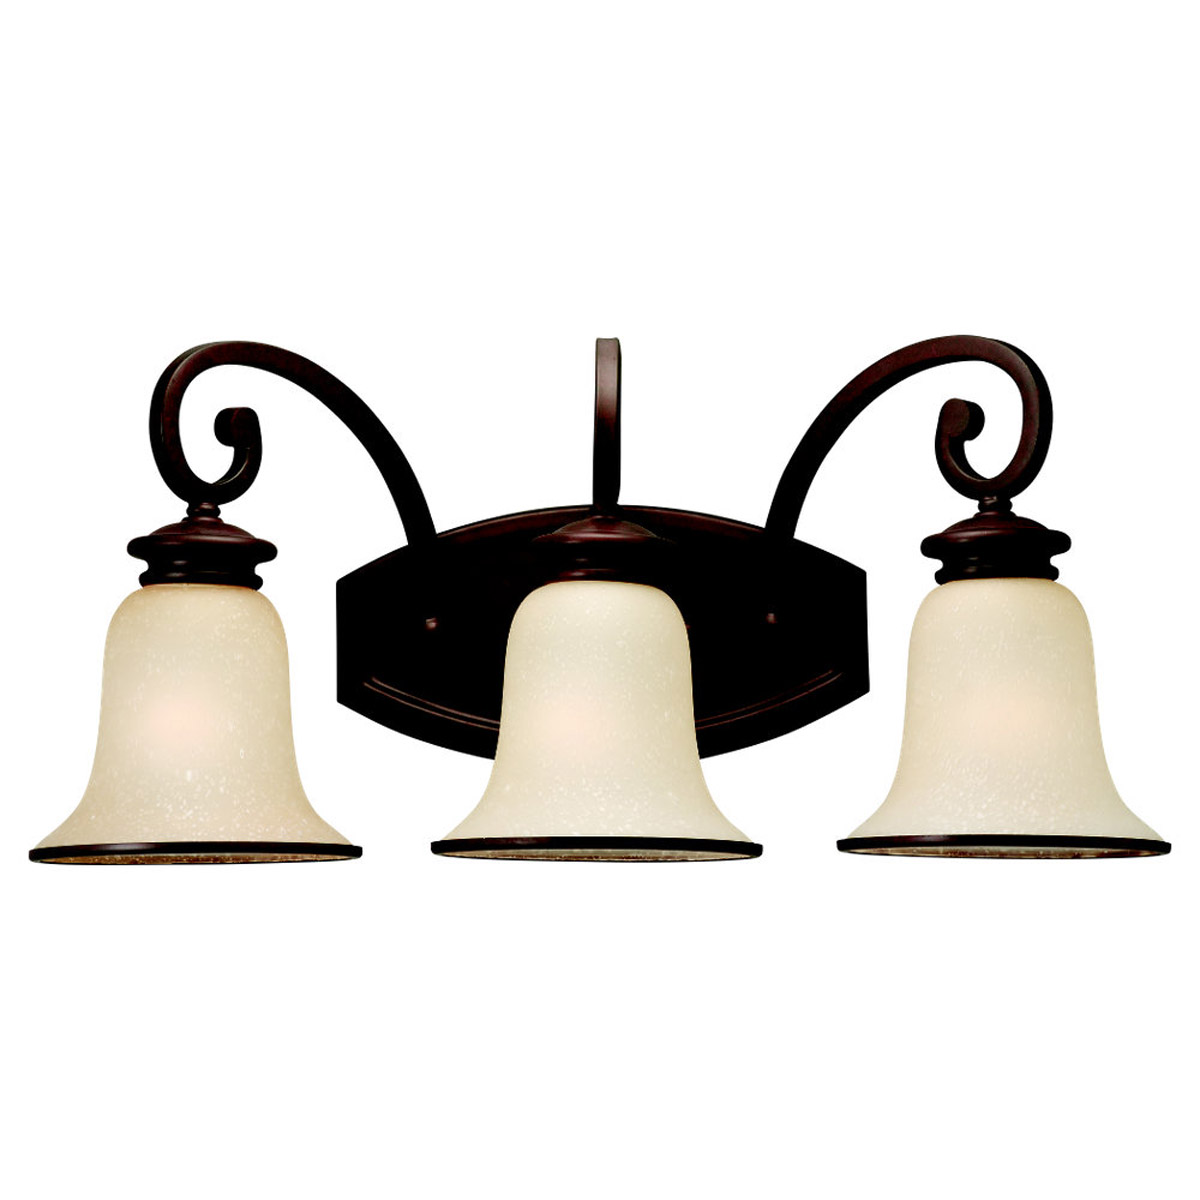 Sea Gull 44146-814 Acadia 3 Light 23 inch Misted Bronze Bath Vanity Wall Light in Standard photo